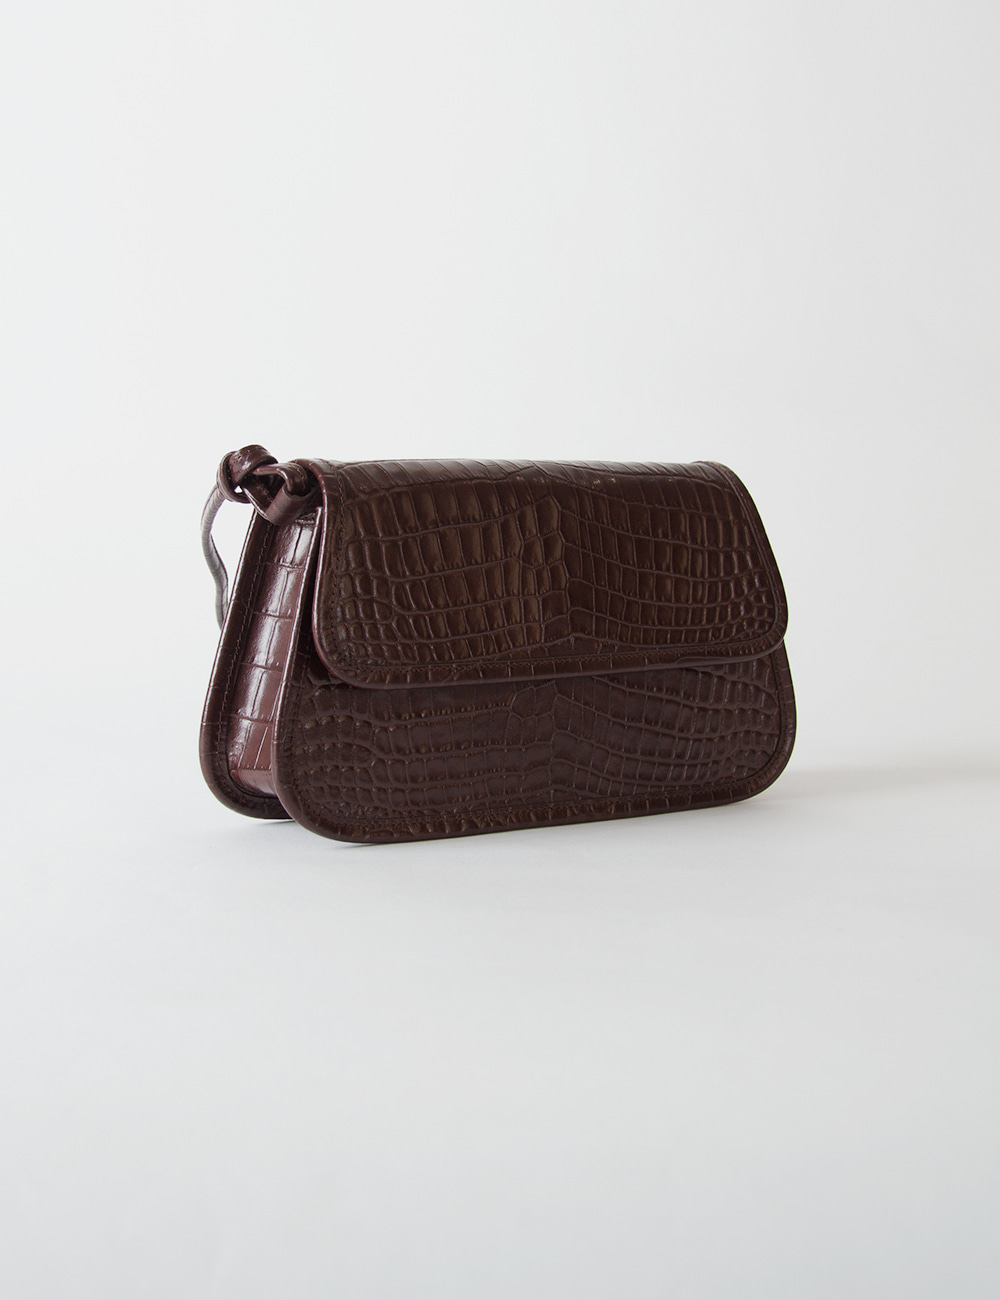 MAISON246,[2차 리오더][사은품증정]246 KOE MINI CROCO_BROWN,No.246